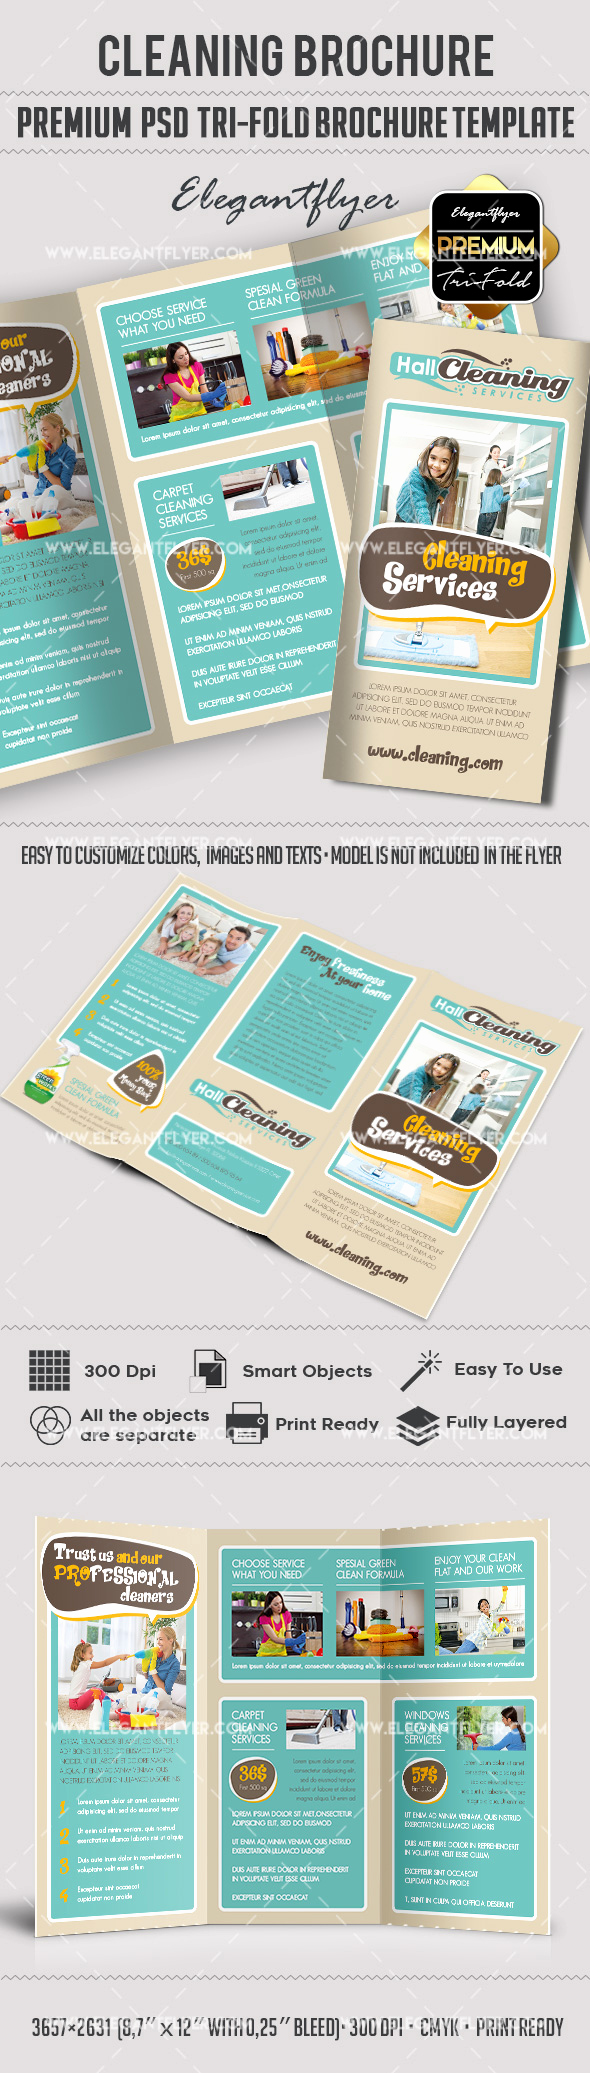 Tri Fold Brochure Template Psd New Psd Brochure for Cleaning Services – by Elegantflyer